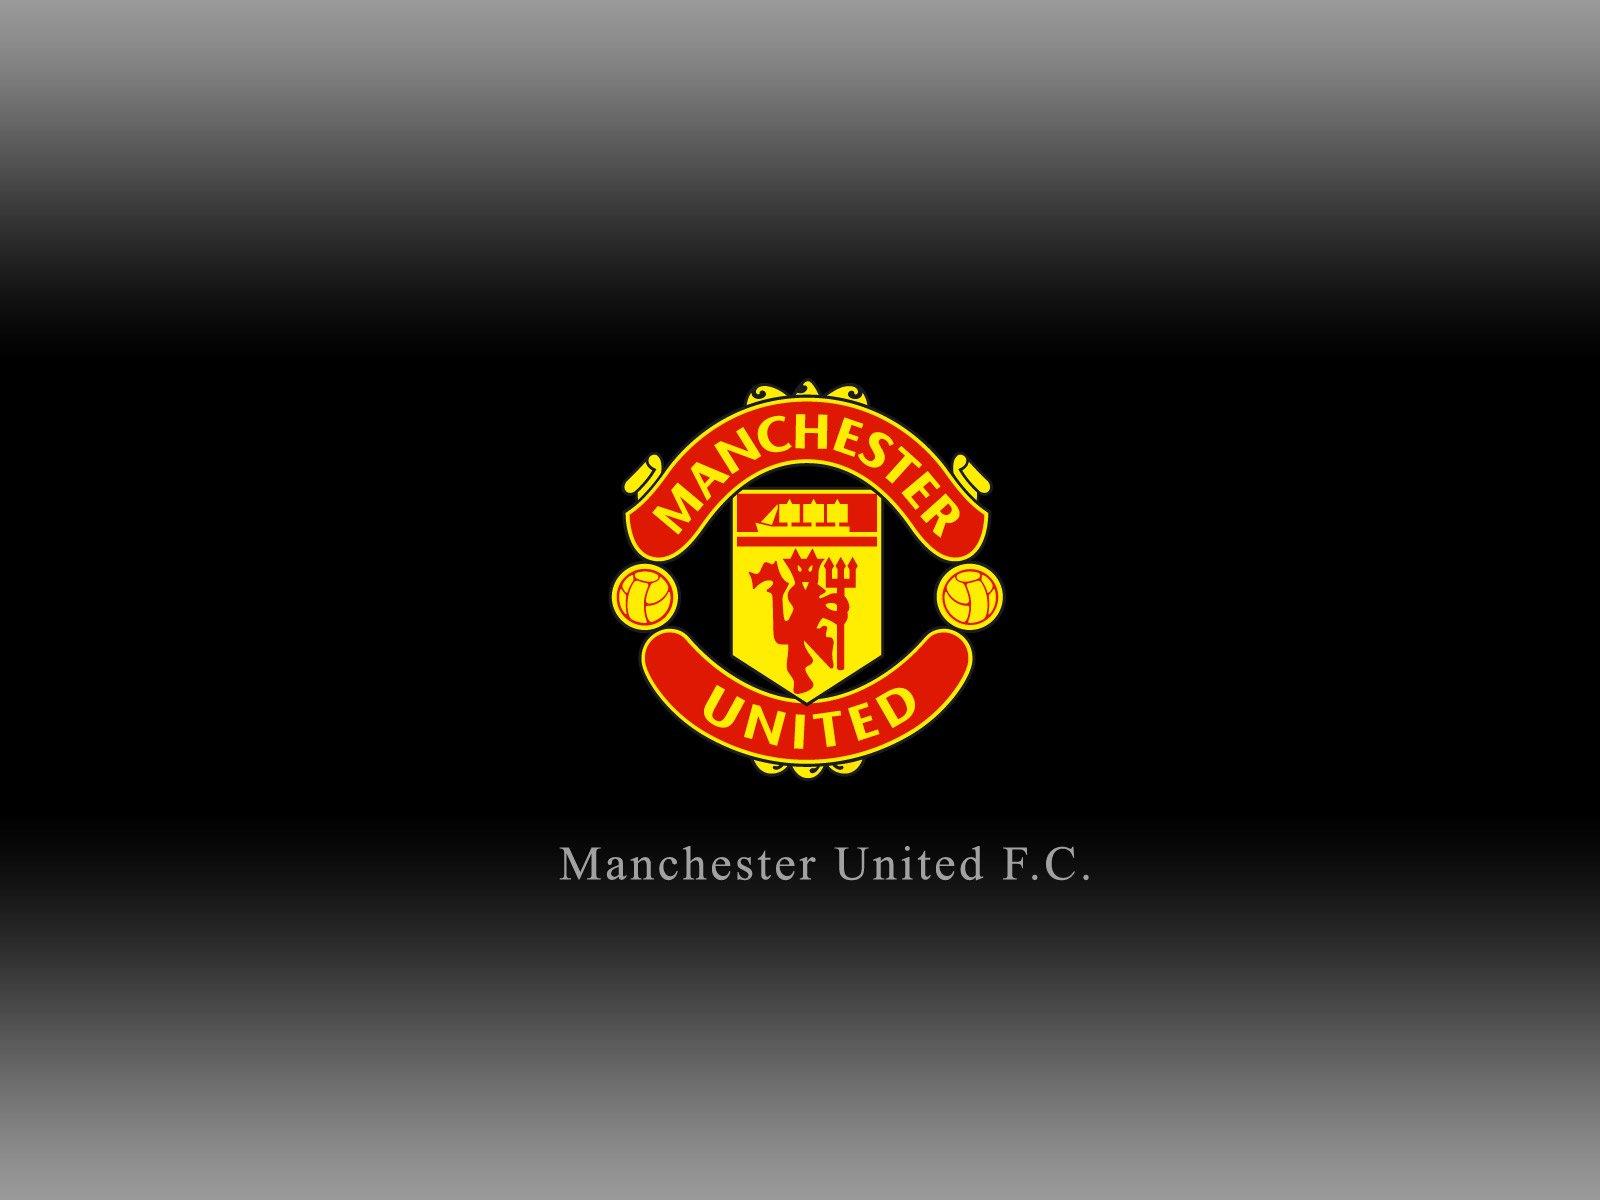 Manchester United Old Trafford Stadium Wallpapers Hd Wallpaper Chelsea Ucl Wallpaper